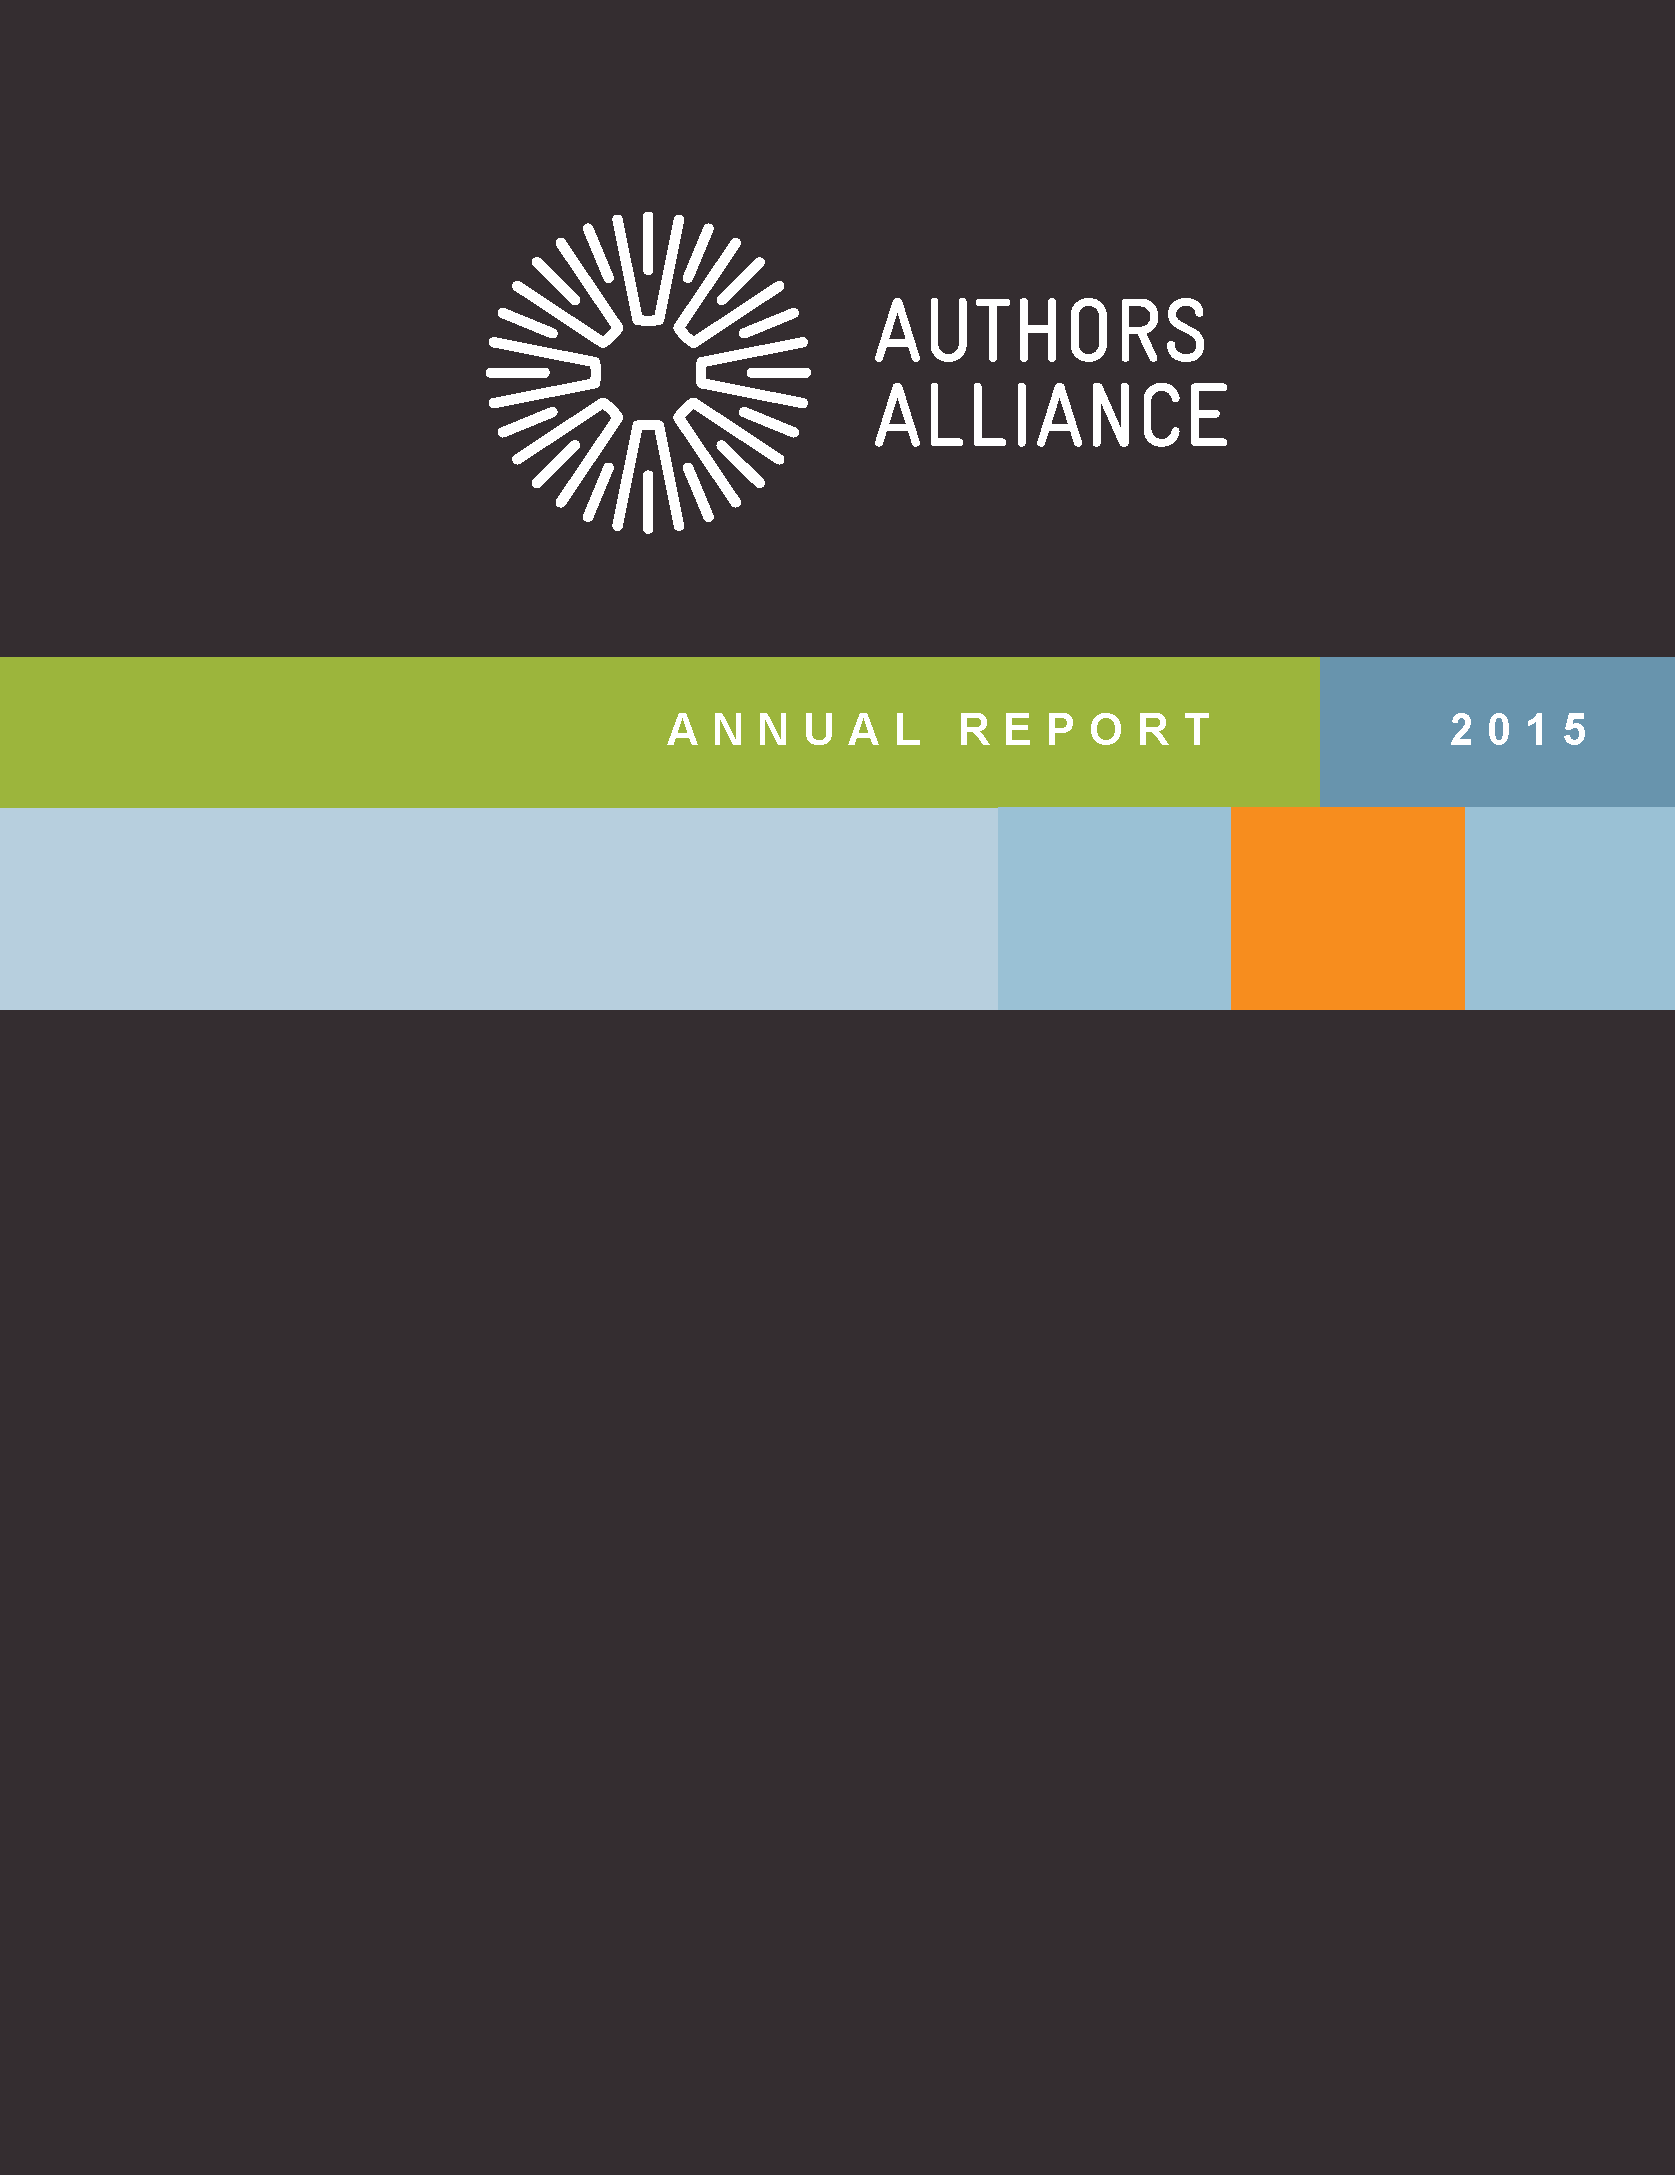 Authors Alliance Annual Report: 2015 in Review